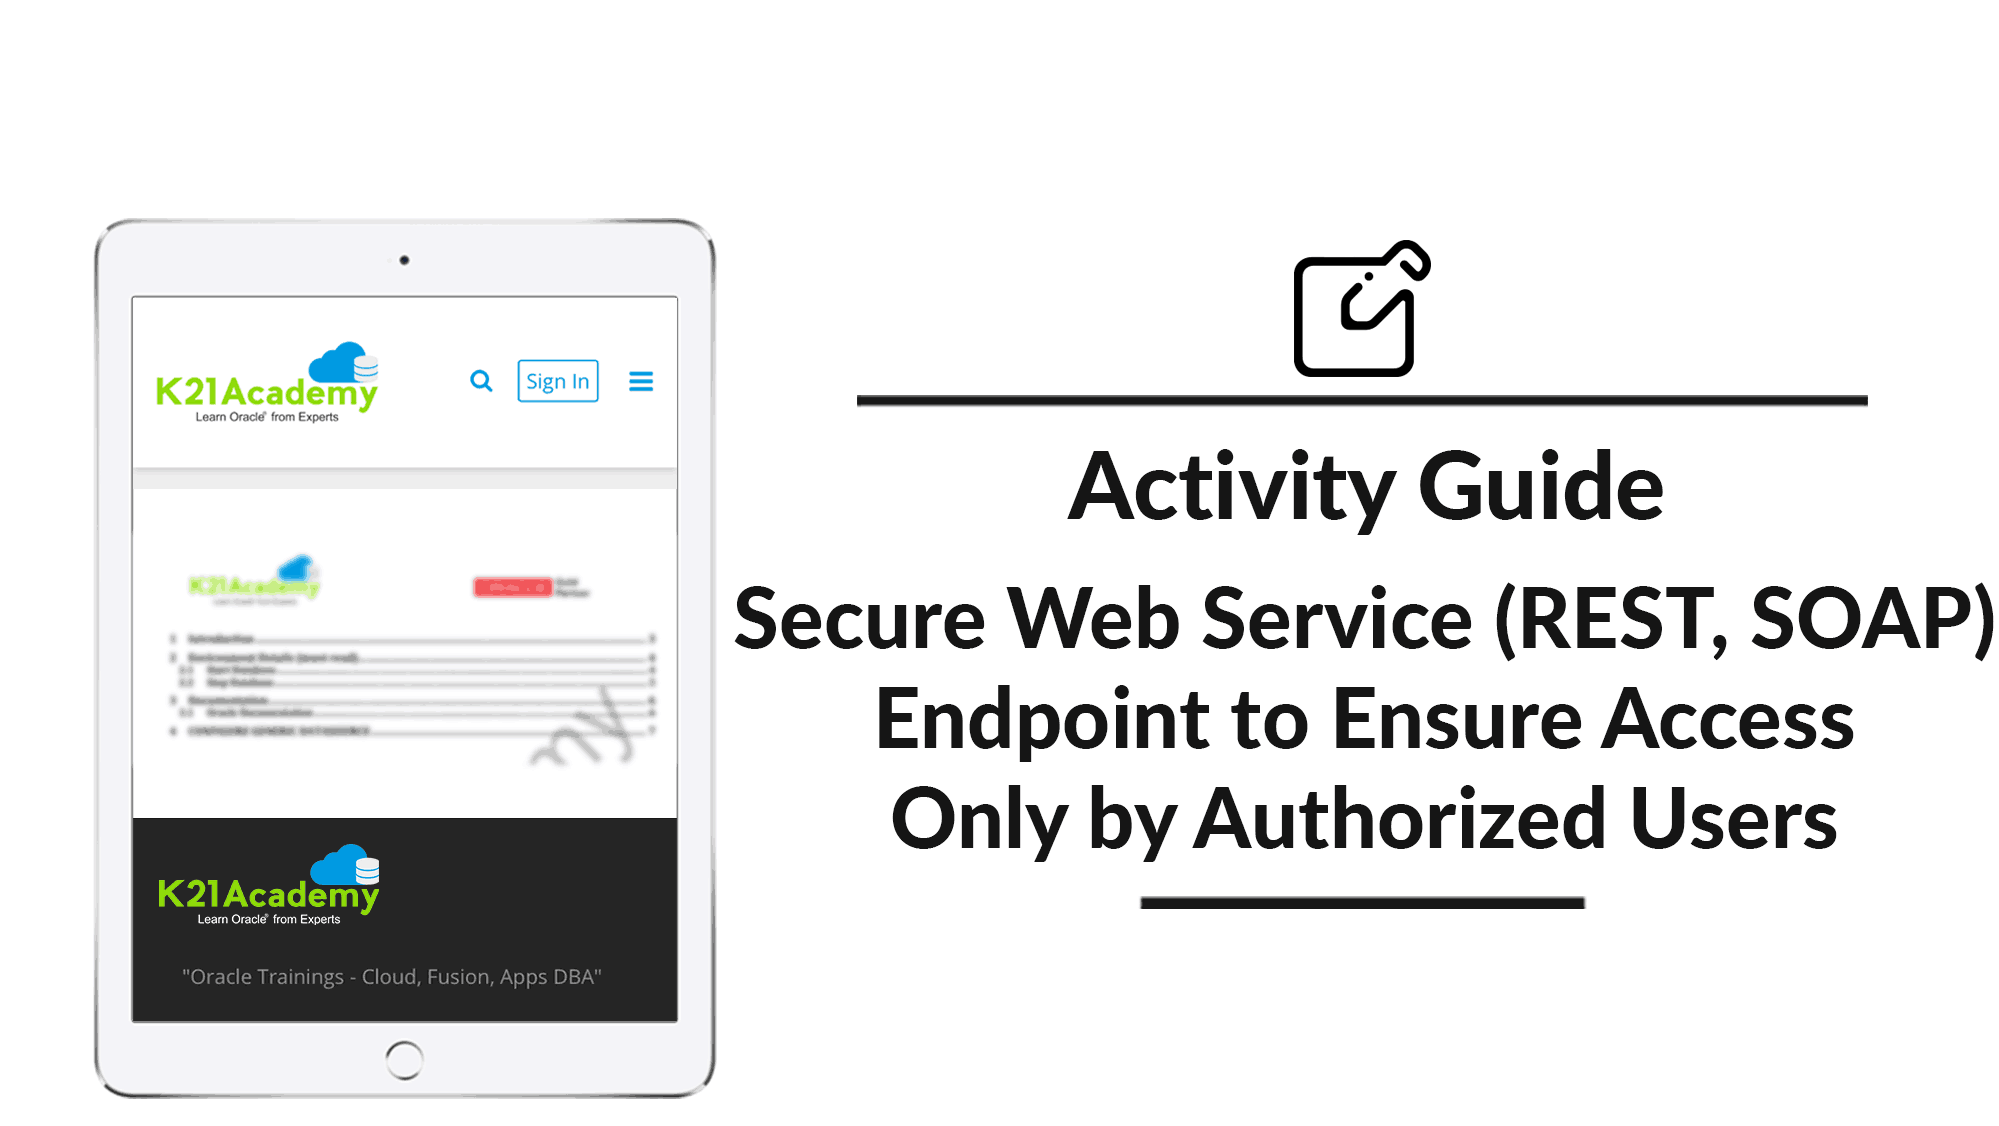 Secure Web Service (REST, SOAP) Endpoint to Ensure Access Only by Authorized Users